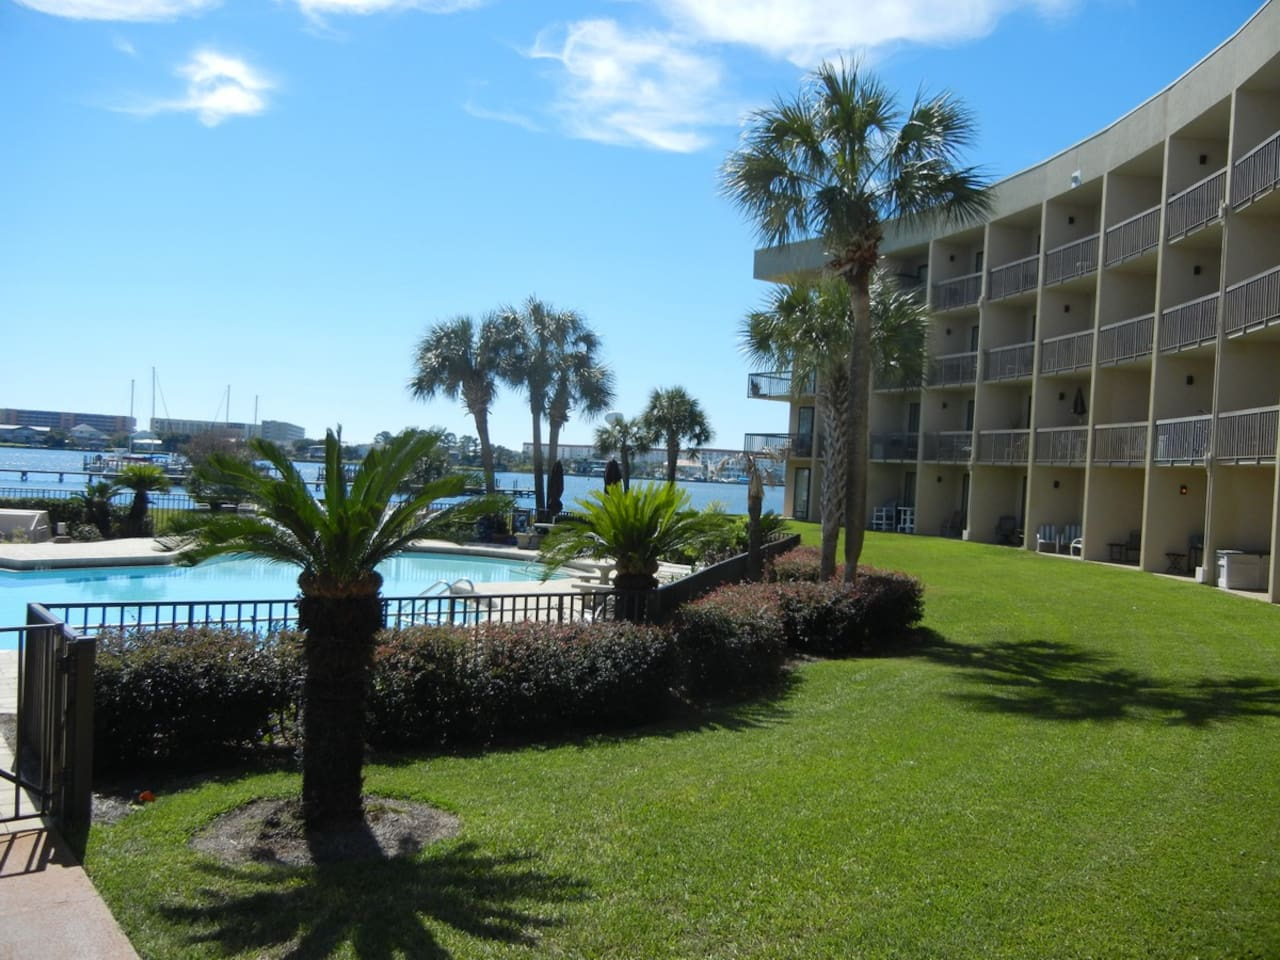 Our cozy condo overlooks Santa Rosa Sound, with beautiful private grounds and a great swimming pool.